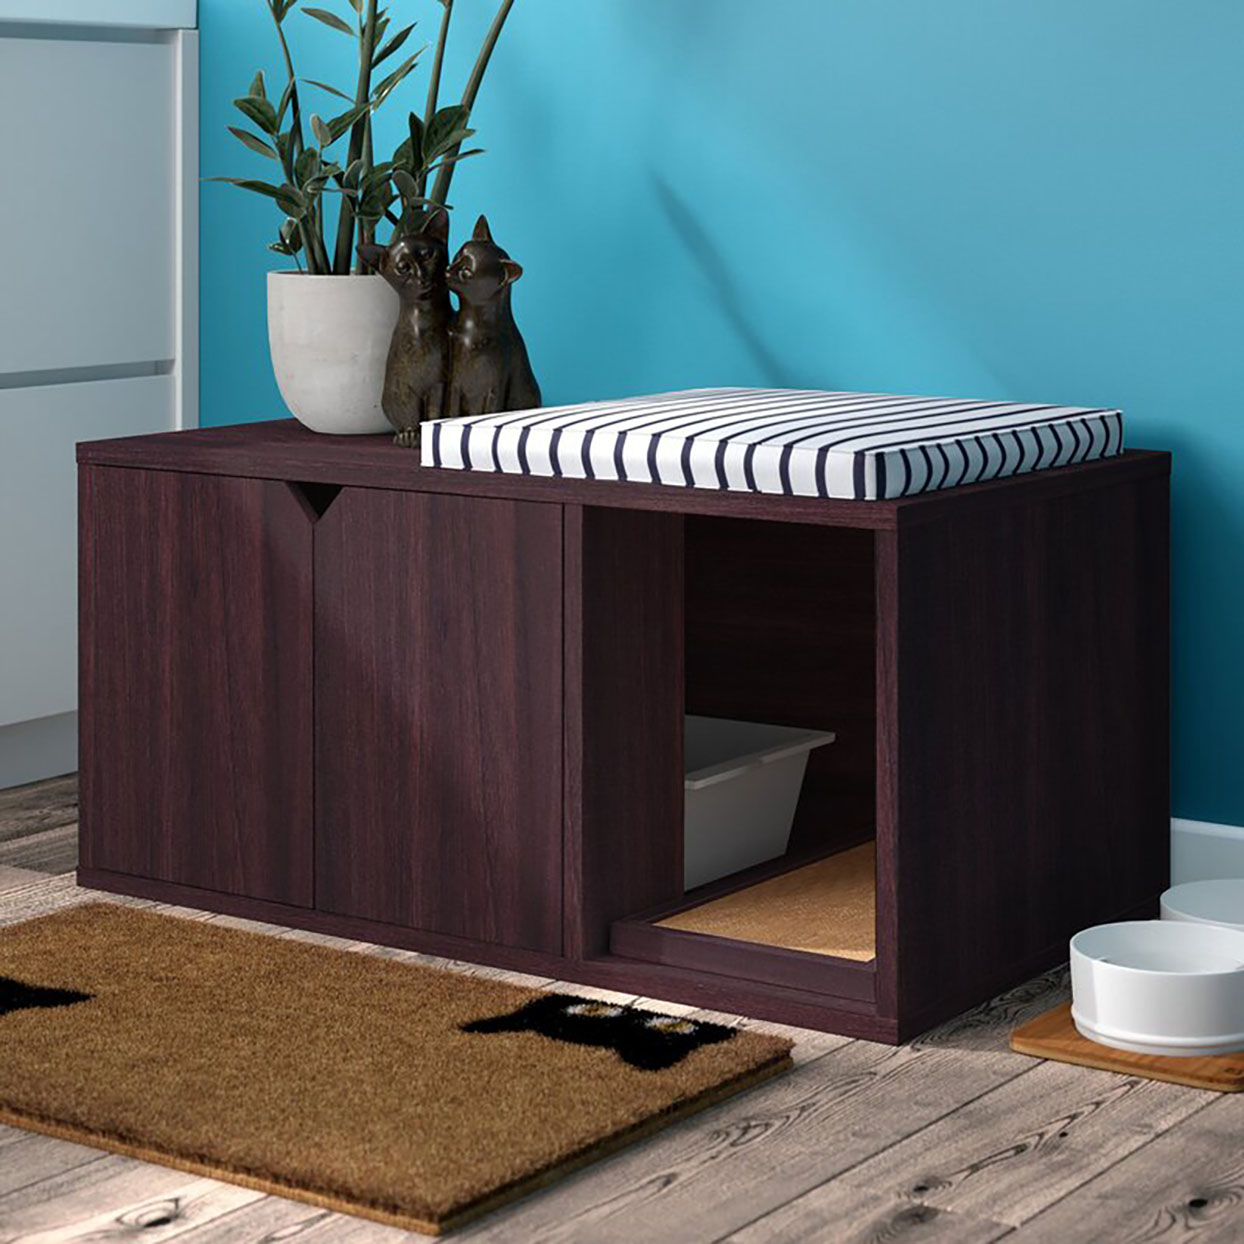 grinnell paperboard litter box enclosure